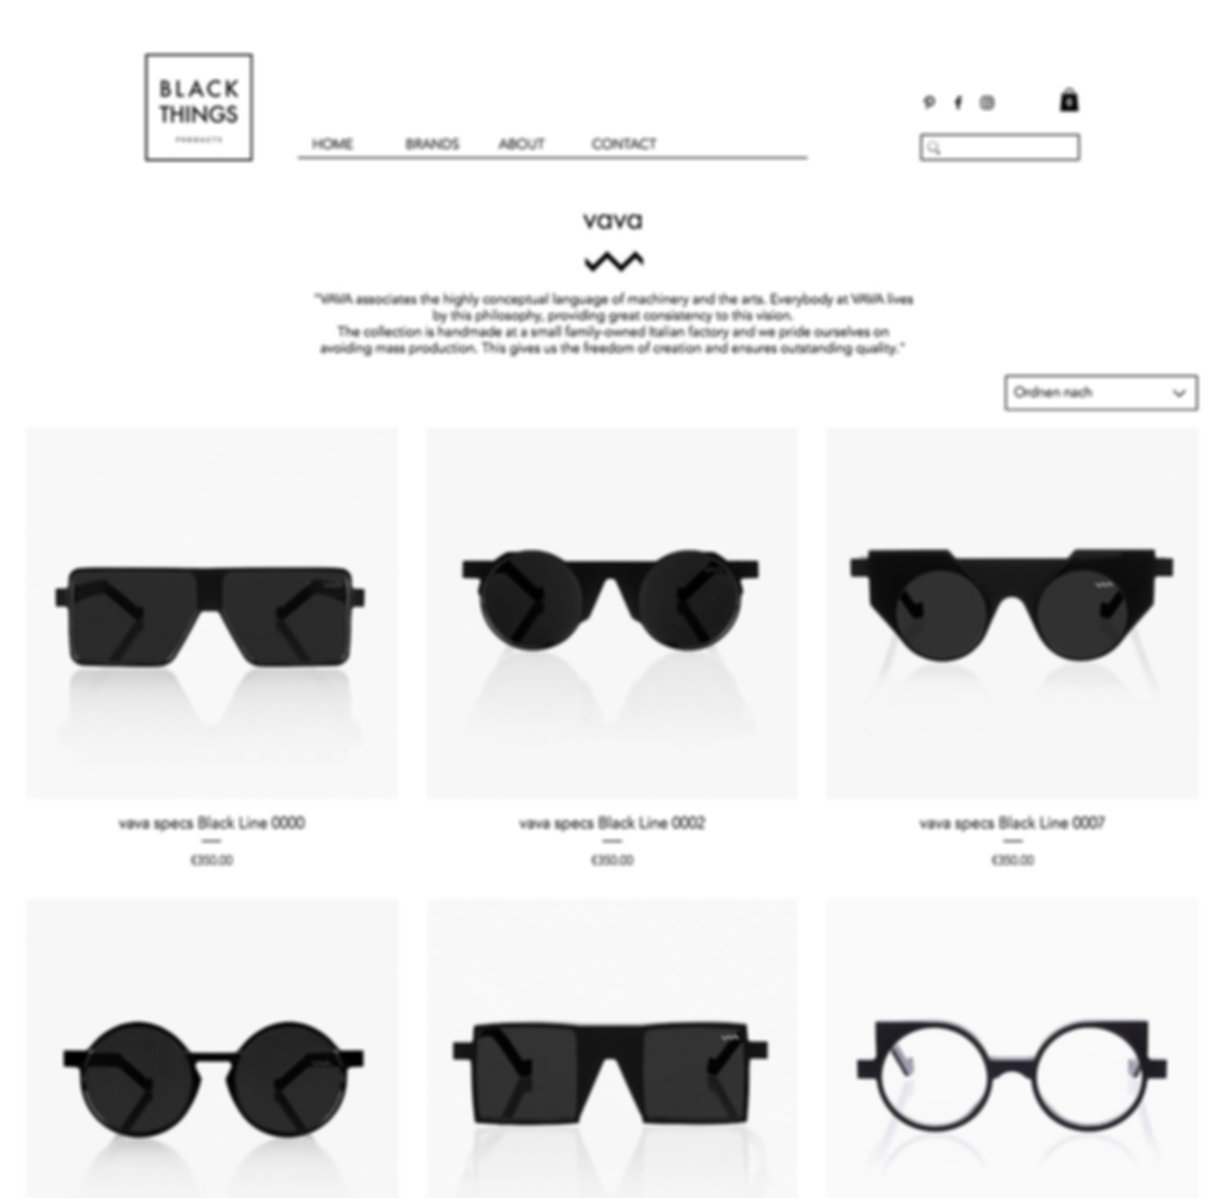 black-things-vava-sunglasses-products-onlinestore